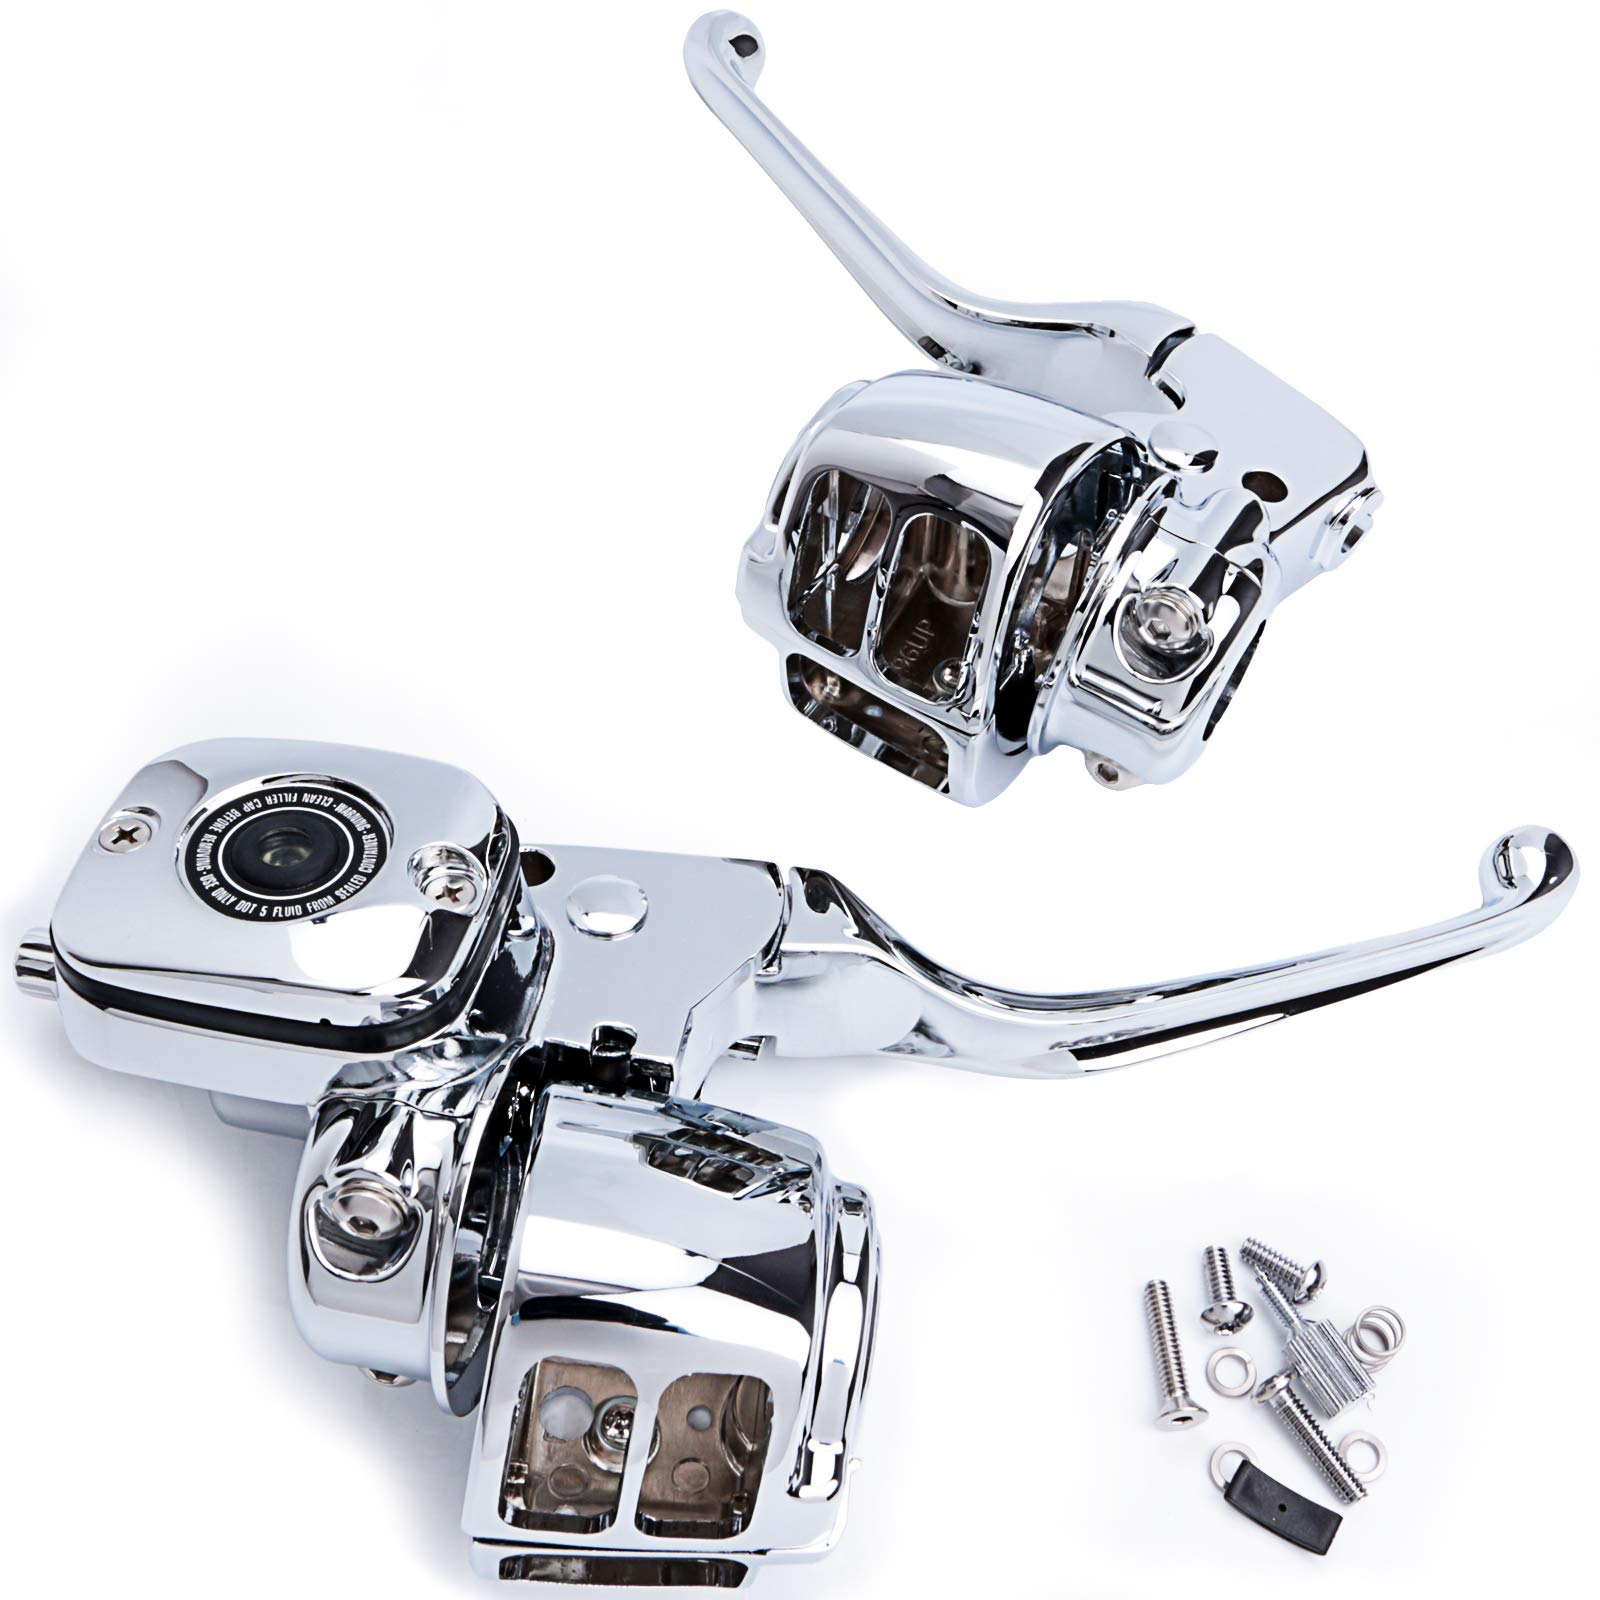 Handlebar Hand Control Kit 9/16 Inch Bore Master Cylinder for 96-06 Harley-Davidson Softail FXSTSB 22-0820 (Chrome) by Chern Yueh